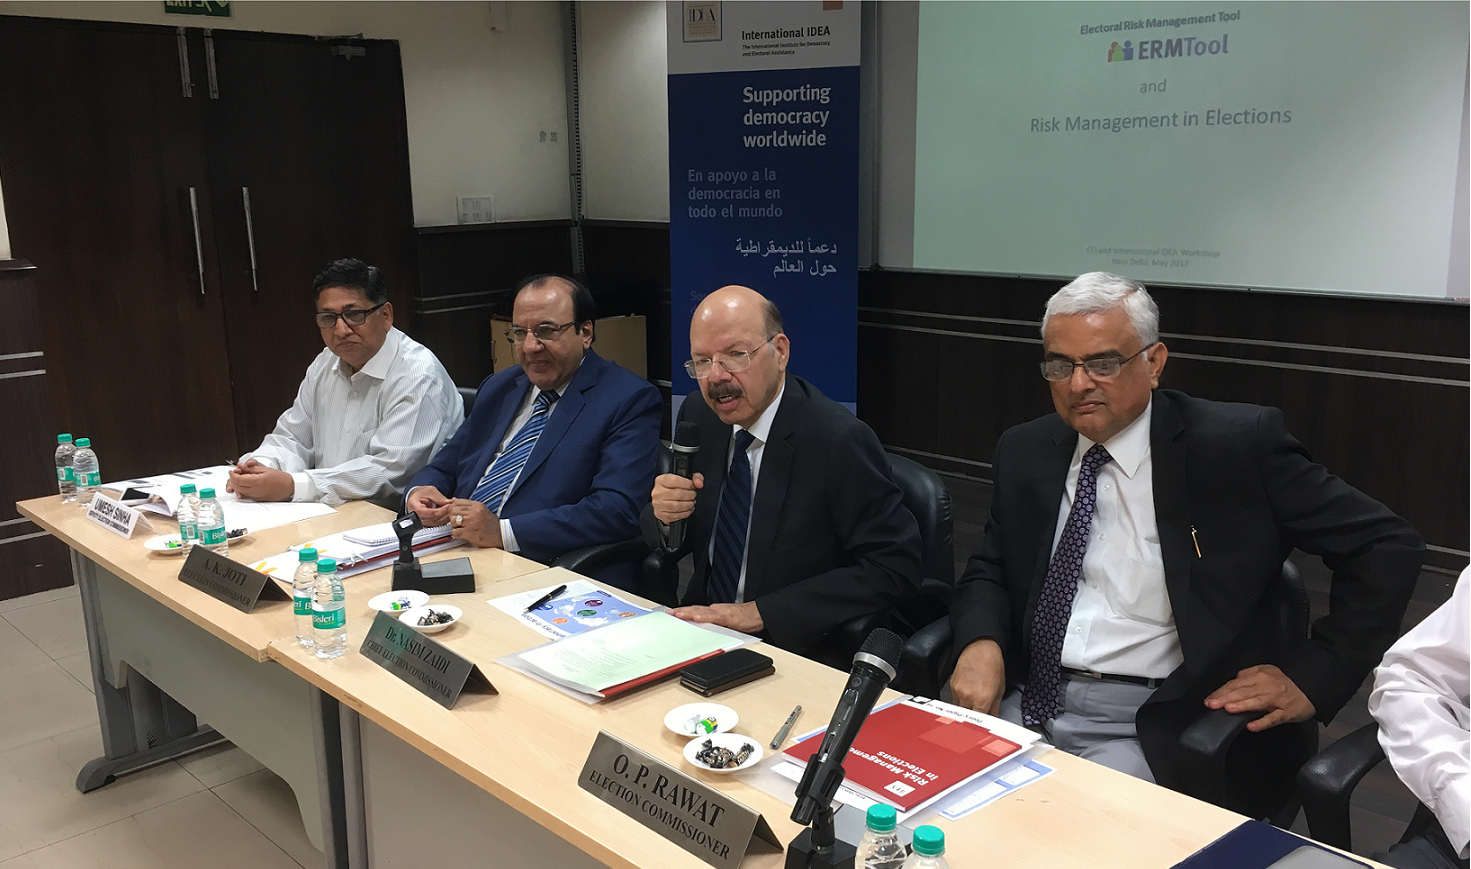 L to R: Mr Umesh Shinha (Deputy Election Commissioner), Mr A. K. Joti (Election Commissioner), Dr Nasim Zaidi (Chief Election Commissioner), & Mr O. P. Rawat (Election Commissioner) [Photo: Adhy Aman/International IDEA]